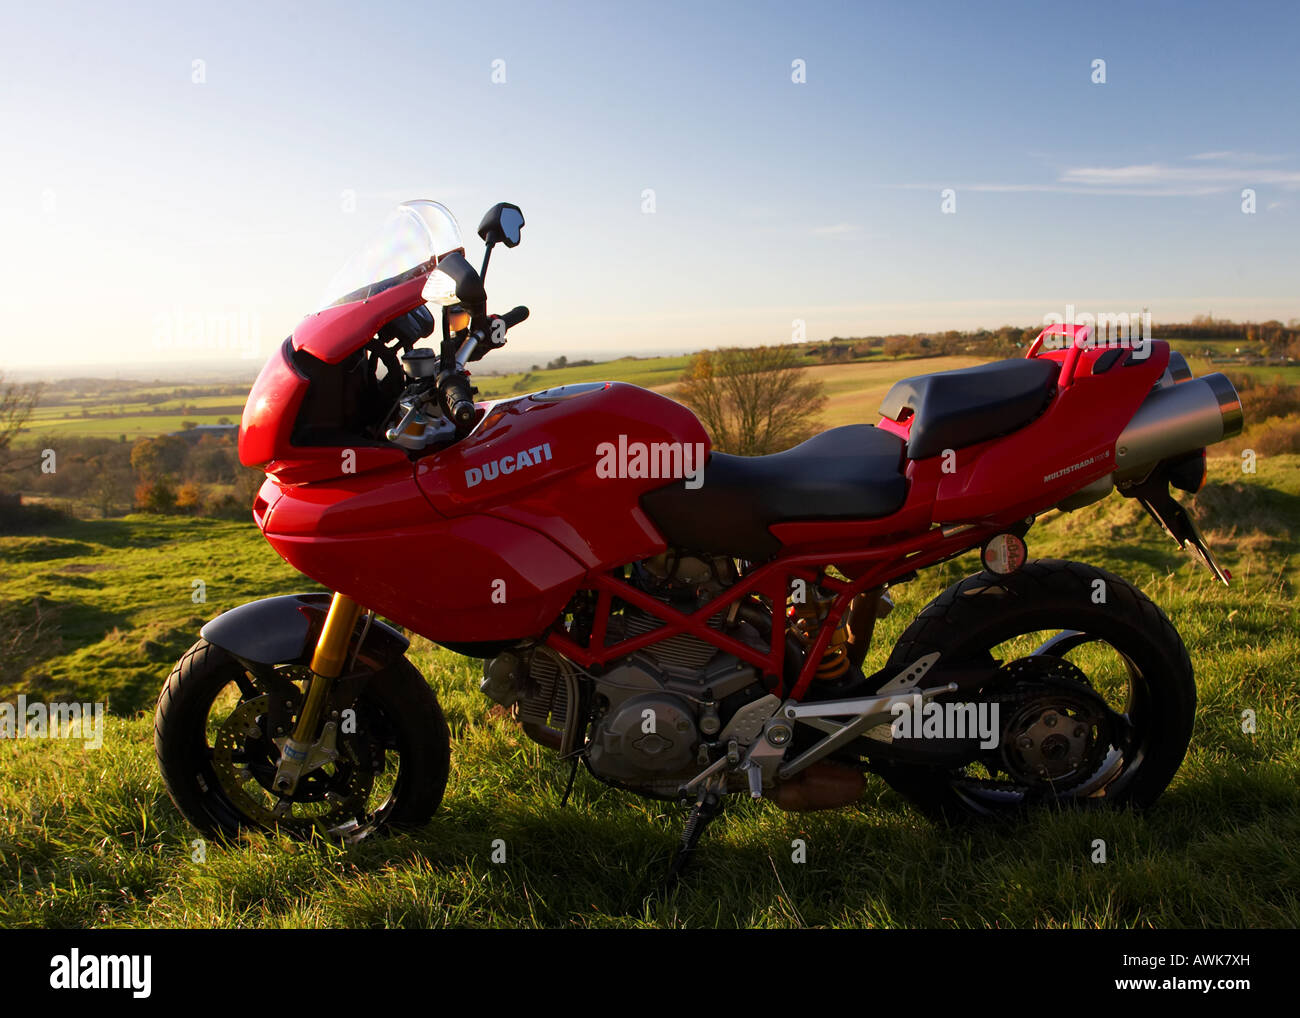 Ducati motorcycle in the english countryside - Stock Image